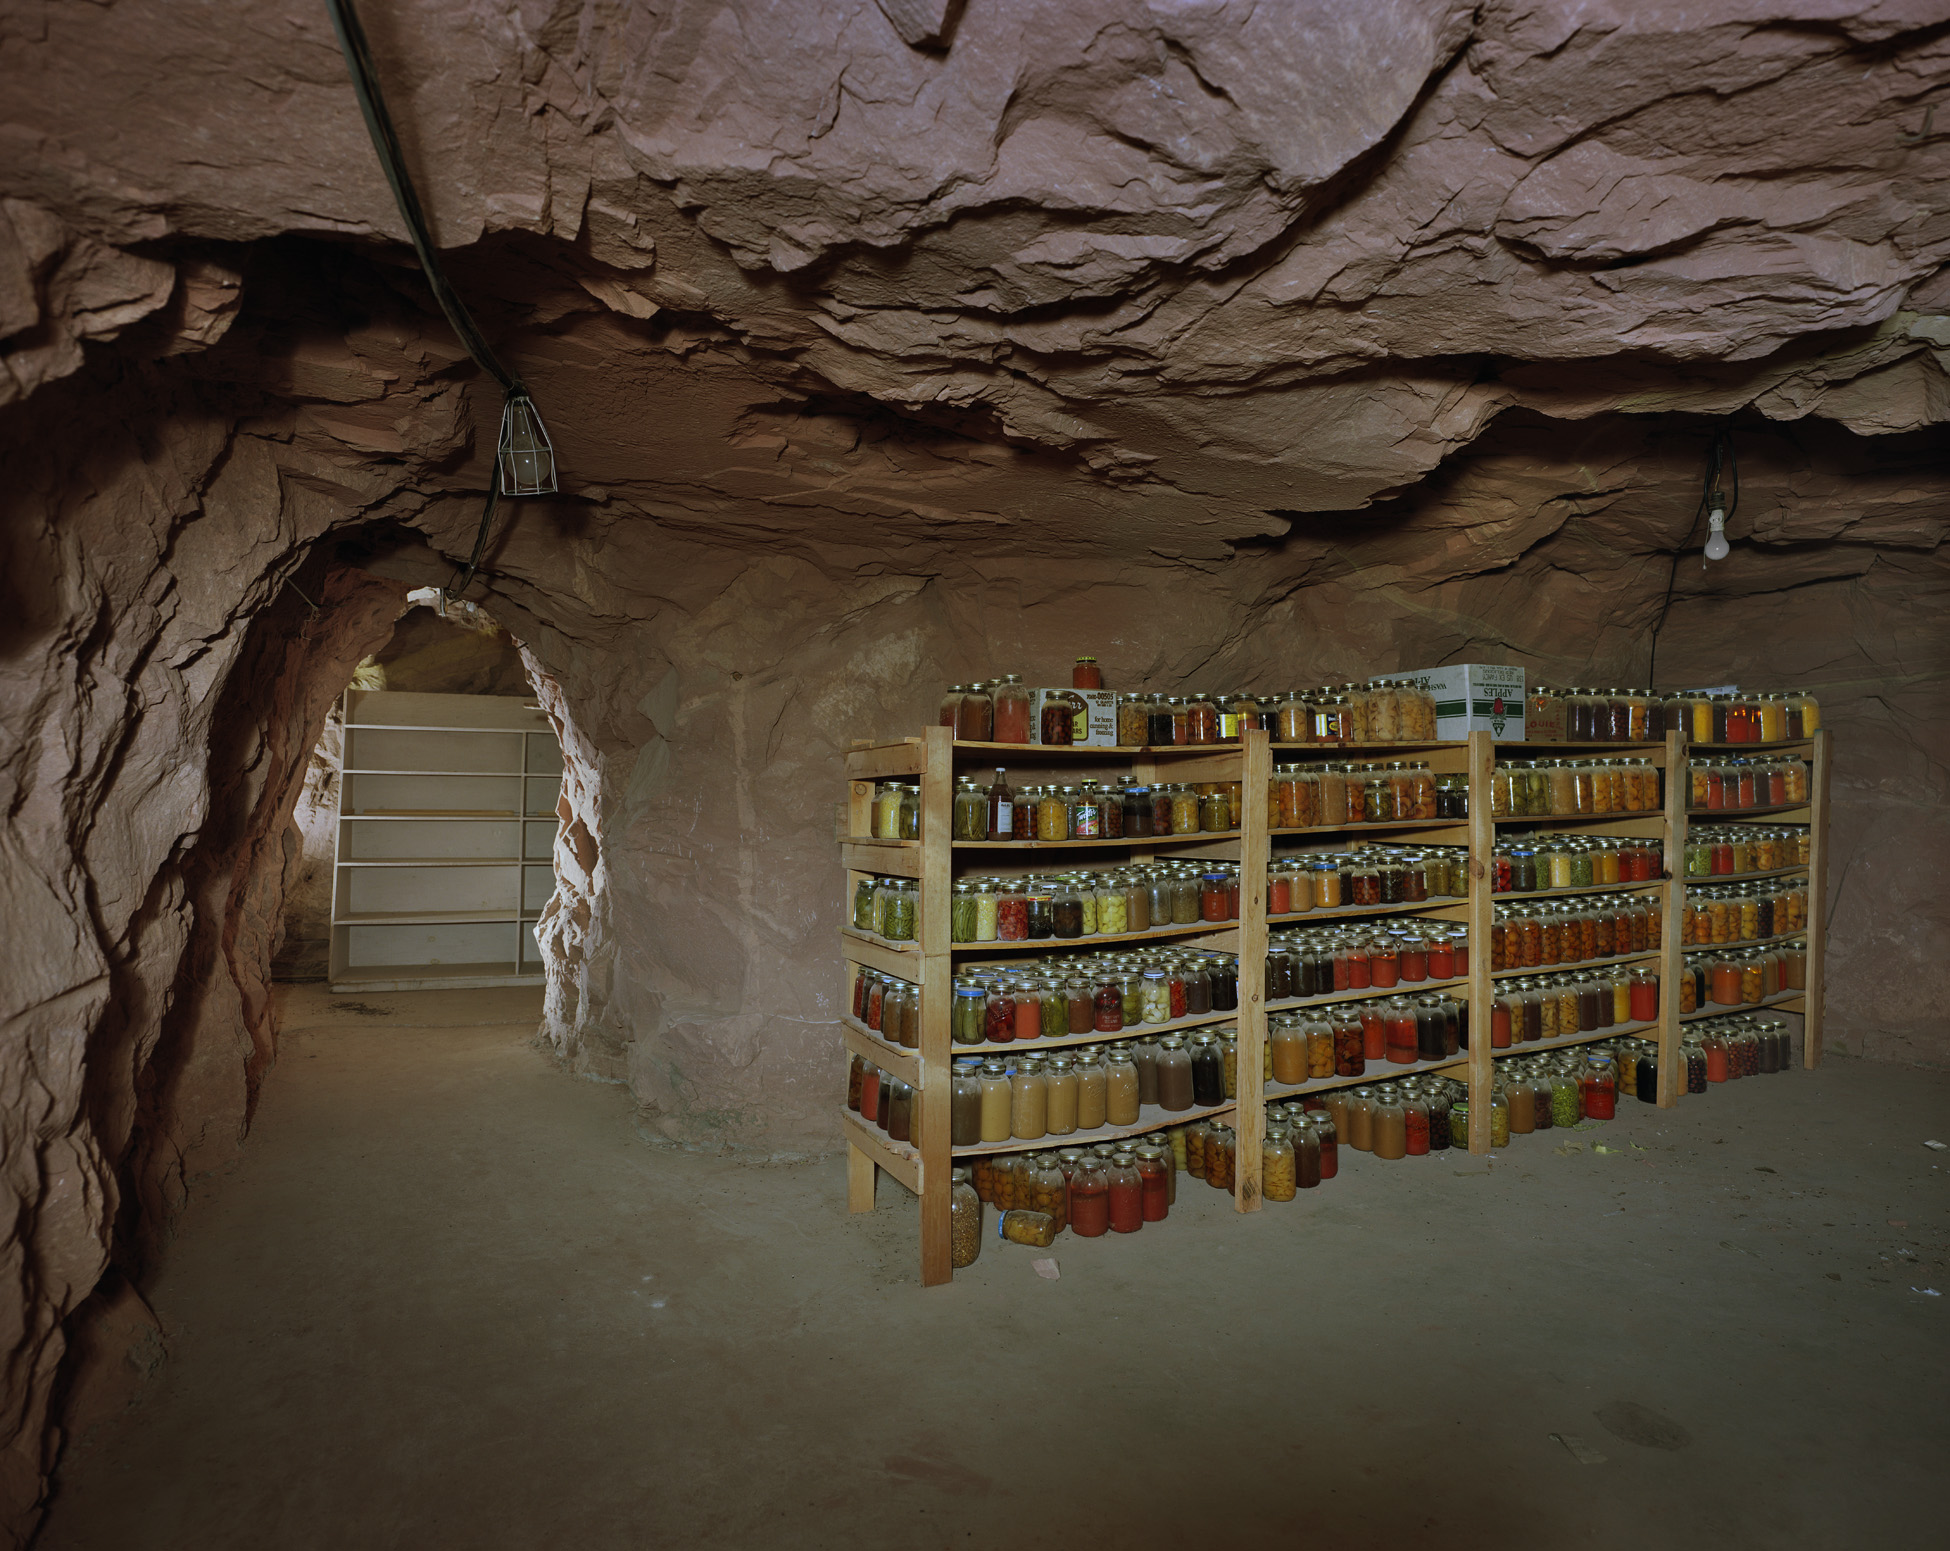 FLDS Cave